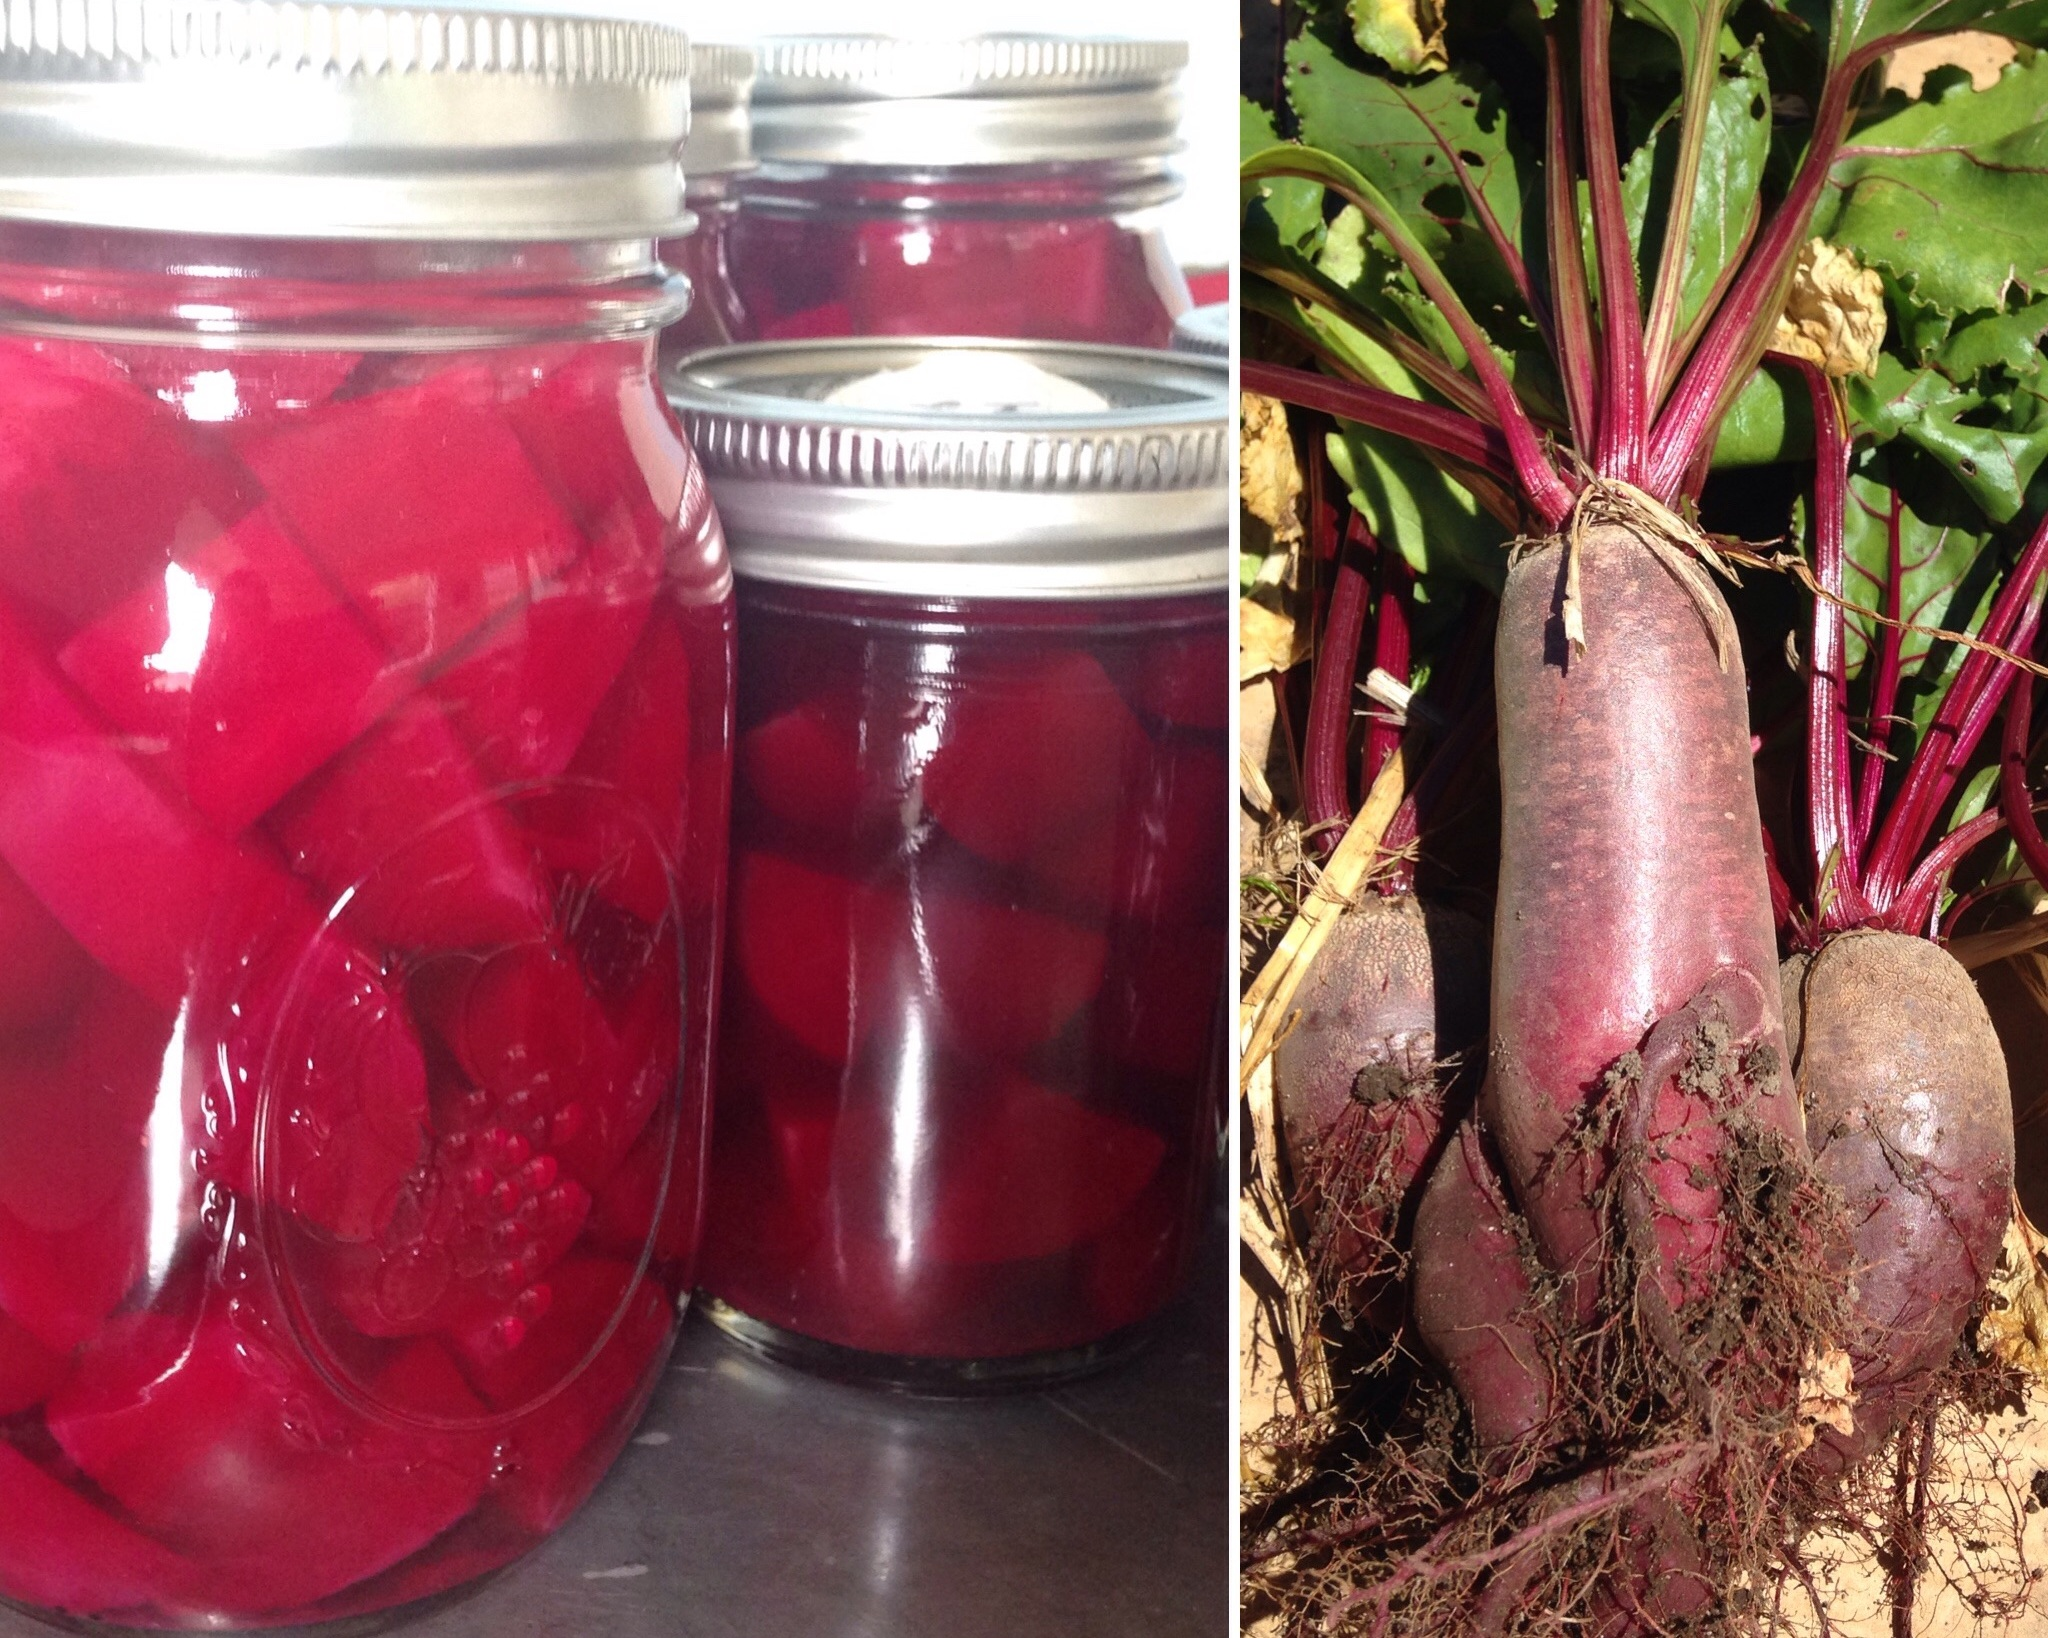 Pickled Beets - Good beet flavor with complex, sweet spices & a vinegar kick. An excellent addition to salads or cheese plates. $10/pint.